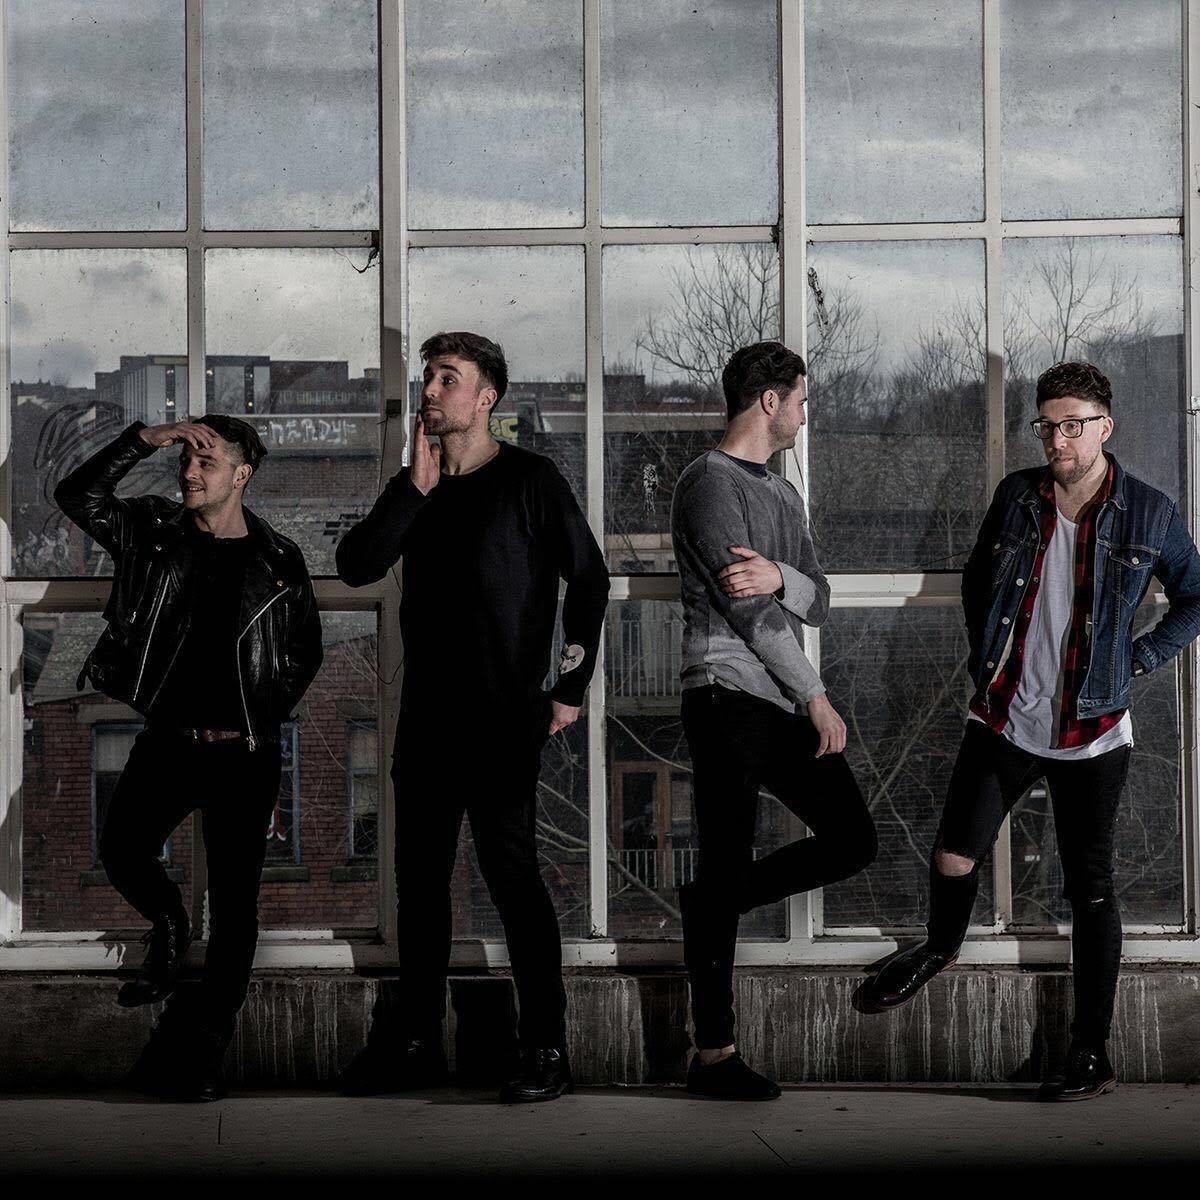 VIDEO PREVIEW: Alvarez Kings play Leadmill web gig to help save music venues